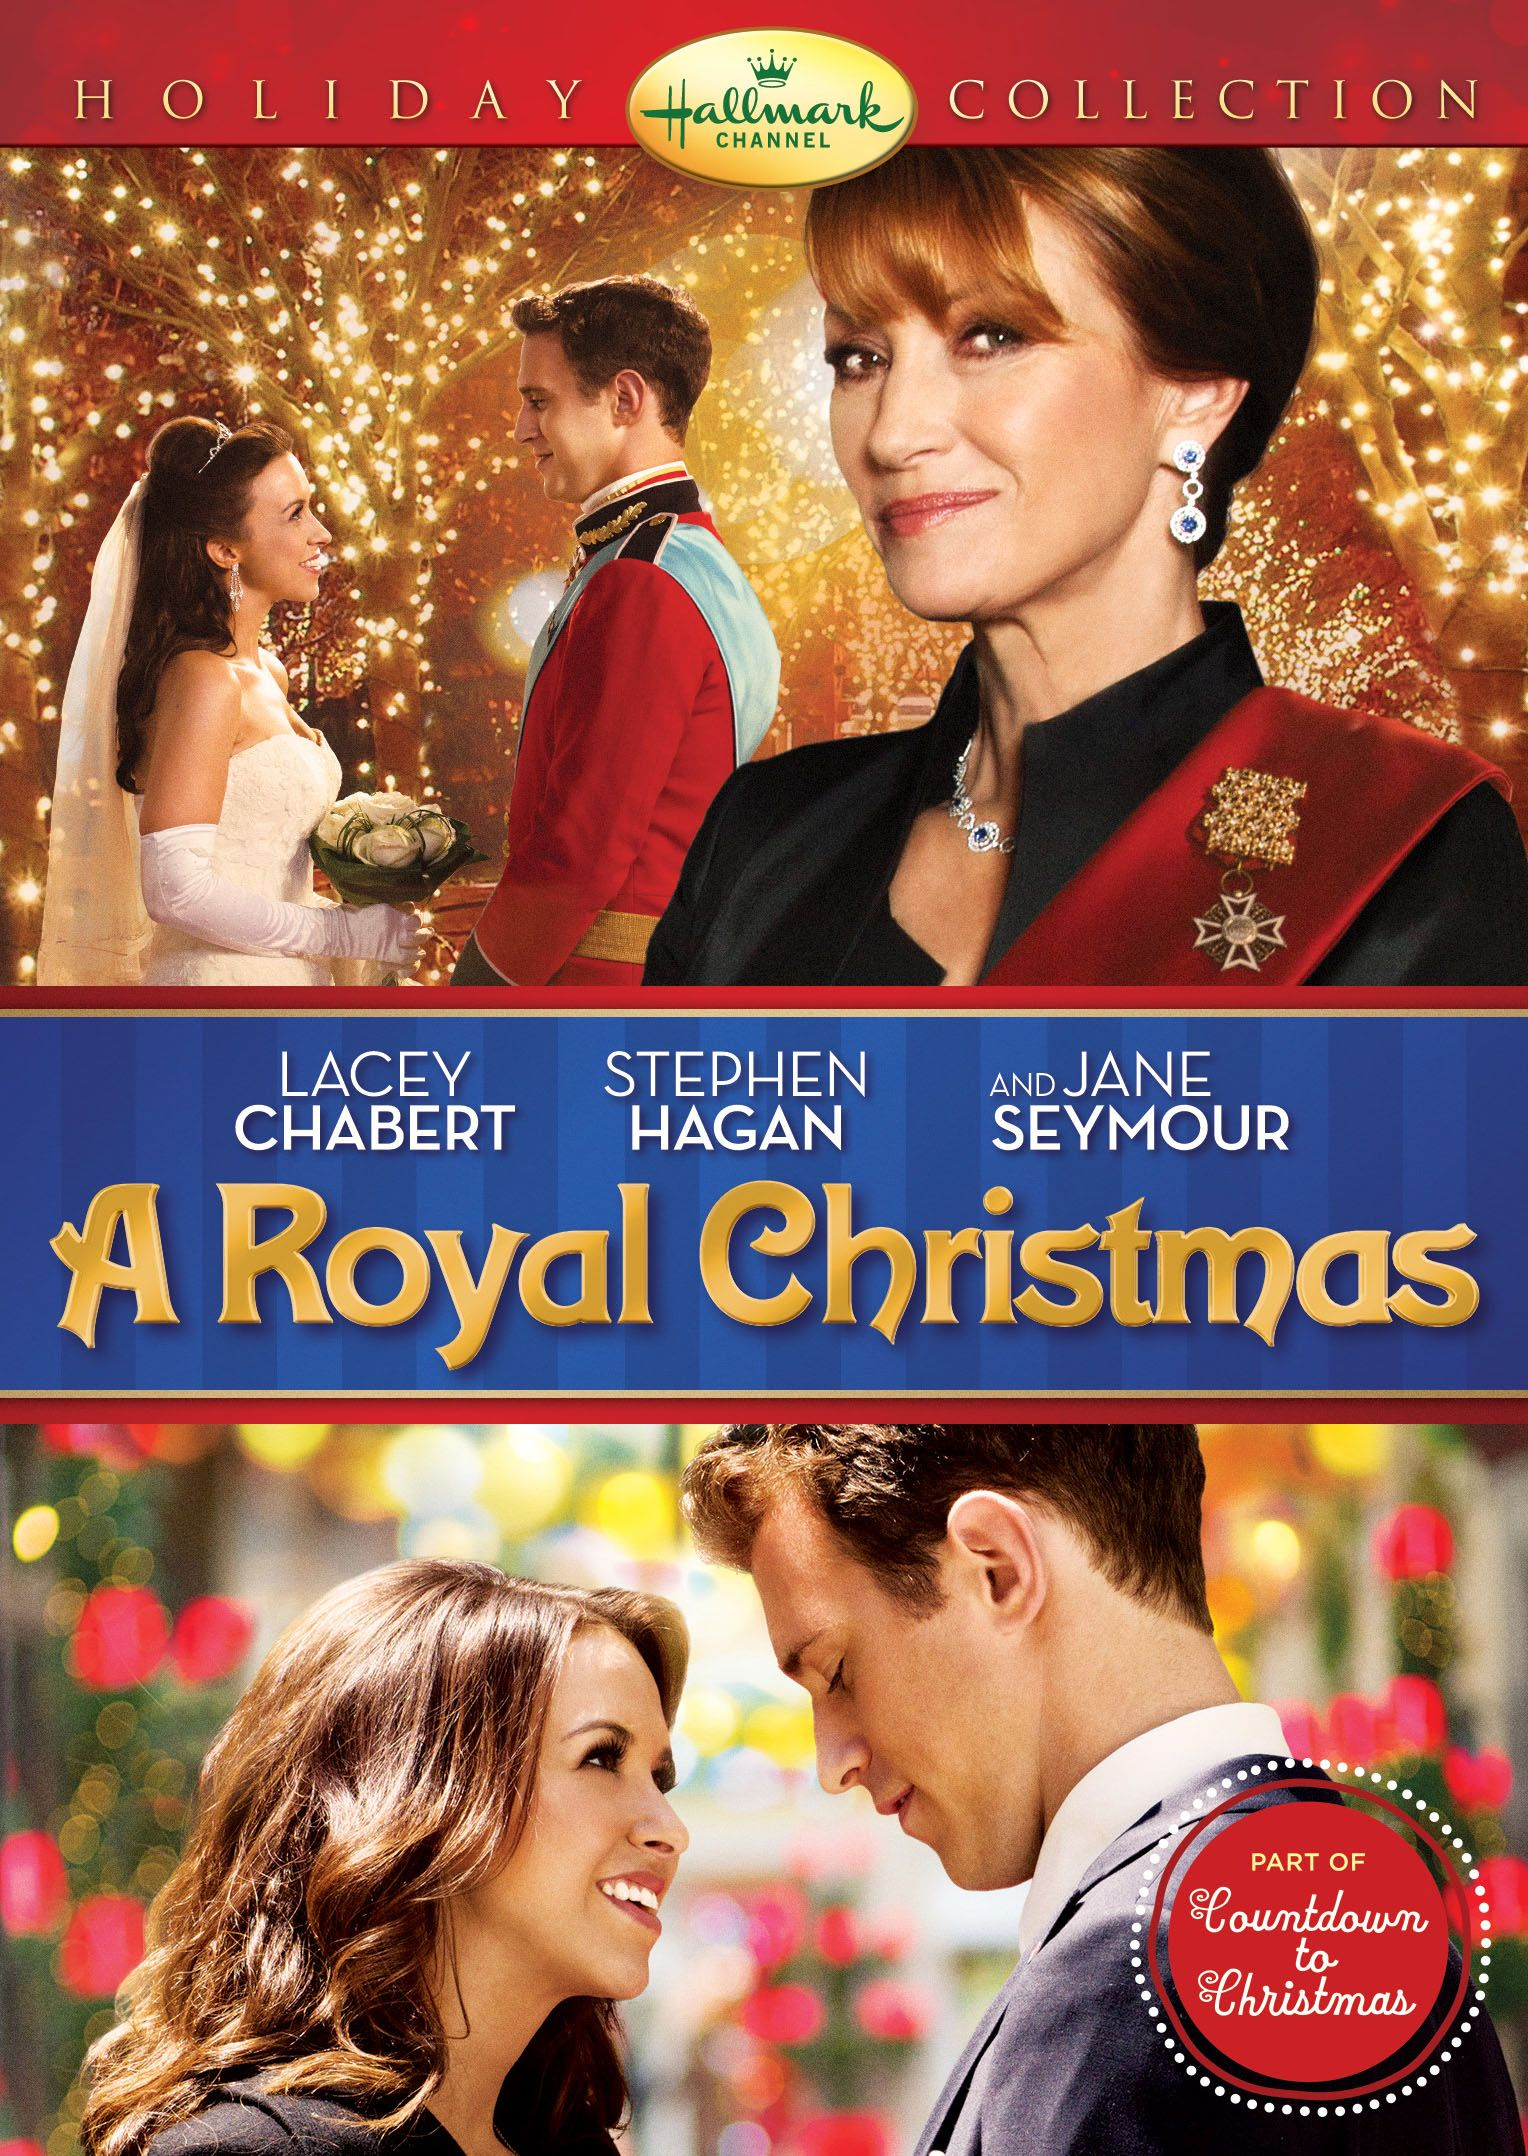 Hallmark Channel Holiday Collection DVD Review | Beyond Media ...